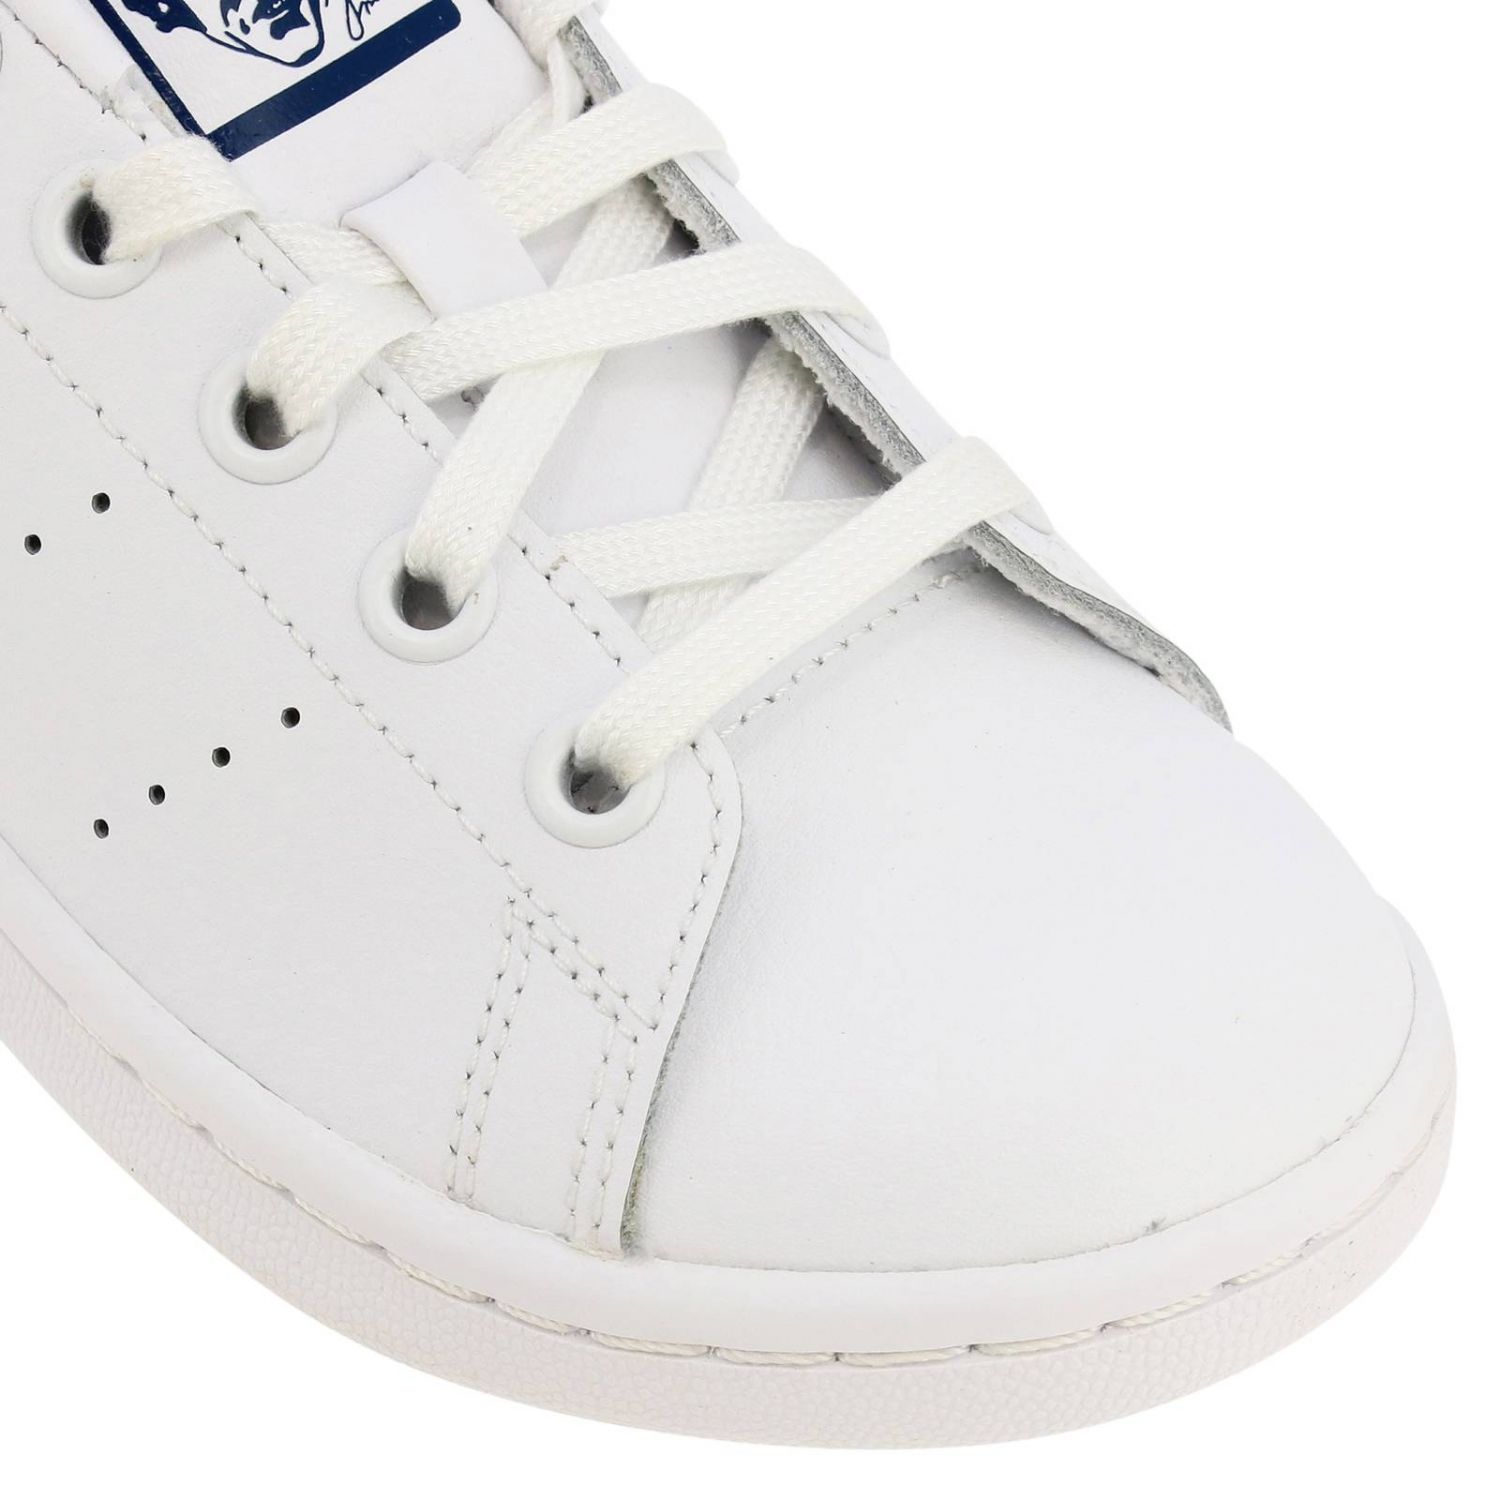 Shoes Adidas Originals: Stan Smith C Adidas Originals Sneakers in leather with contrasting heel white 3